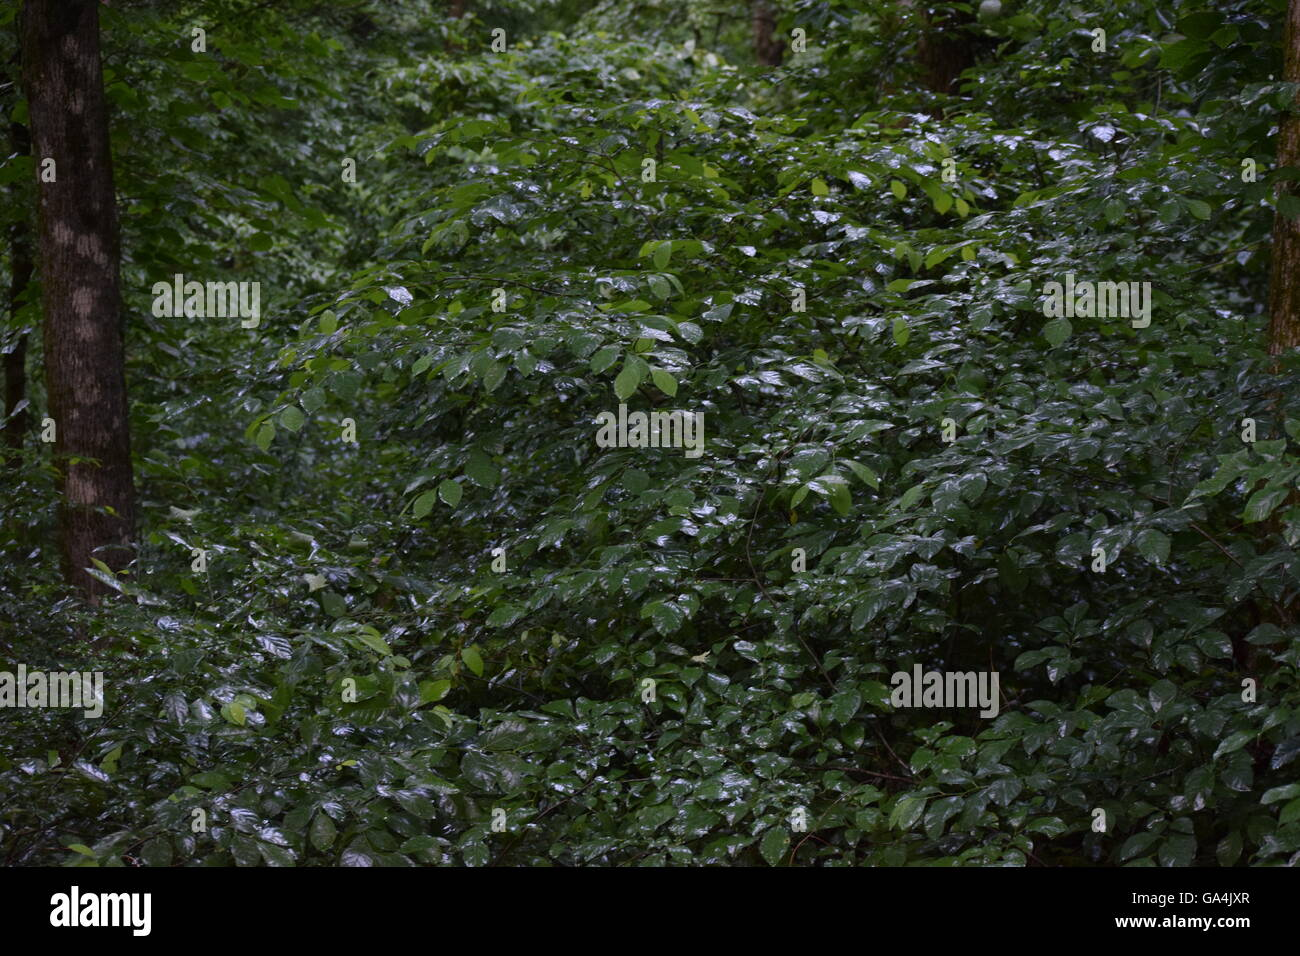 Damp leaves glisten in a forest after rain Stock Photo